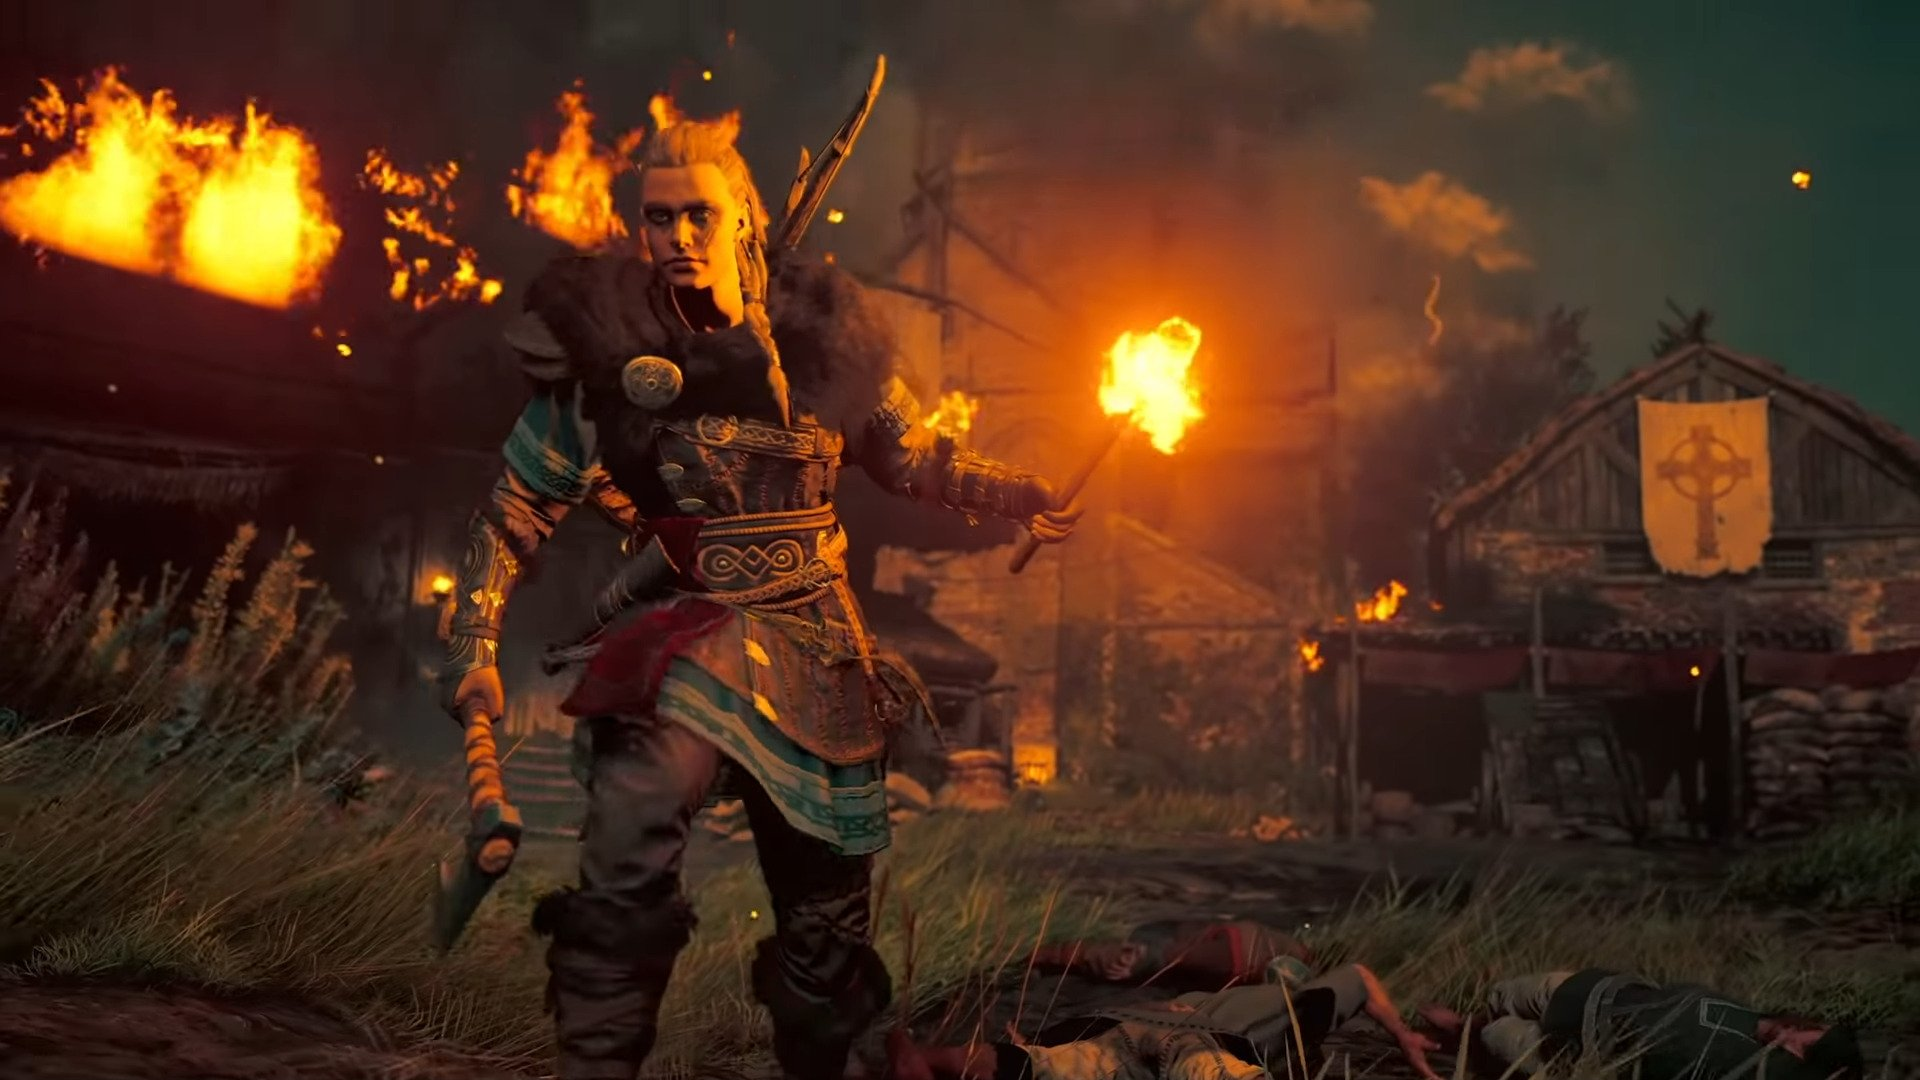 Massive Assassin's Creed Valhalla Deep Dive Trailer Releases Just A Few Weeks Before The Game Drops